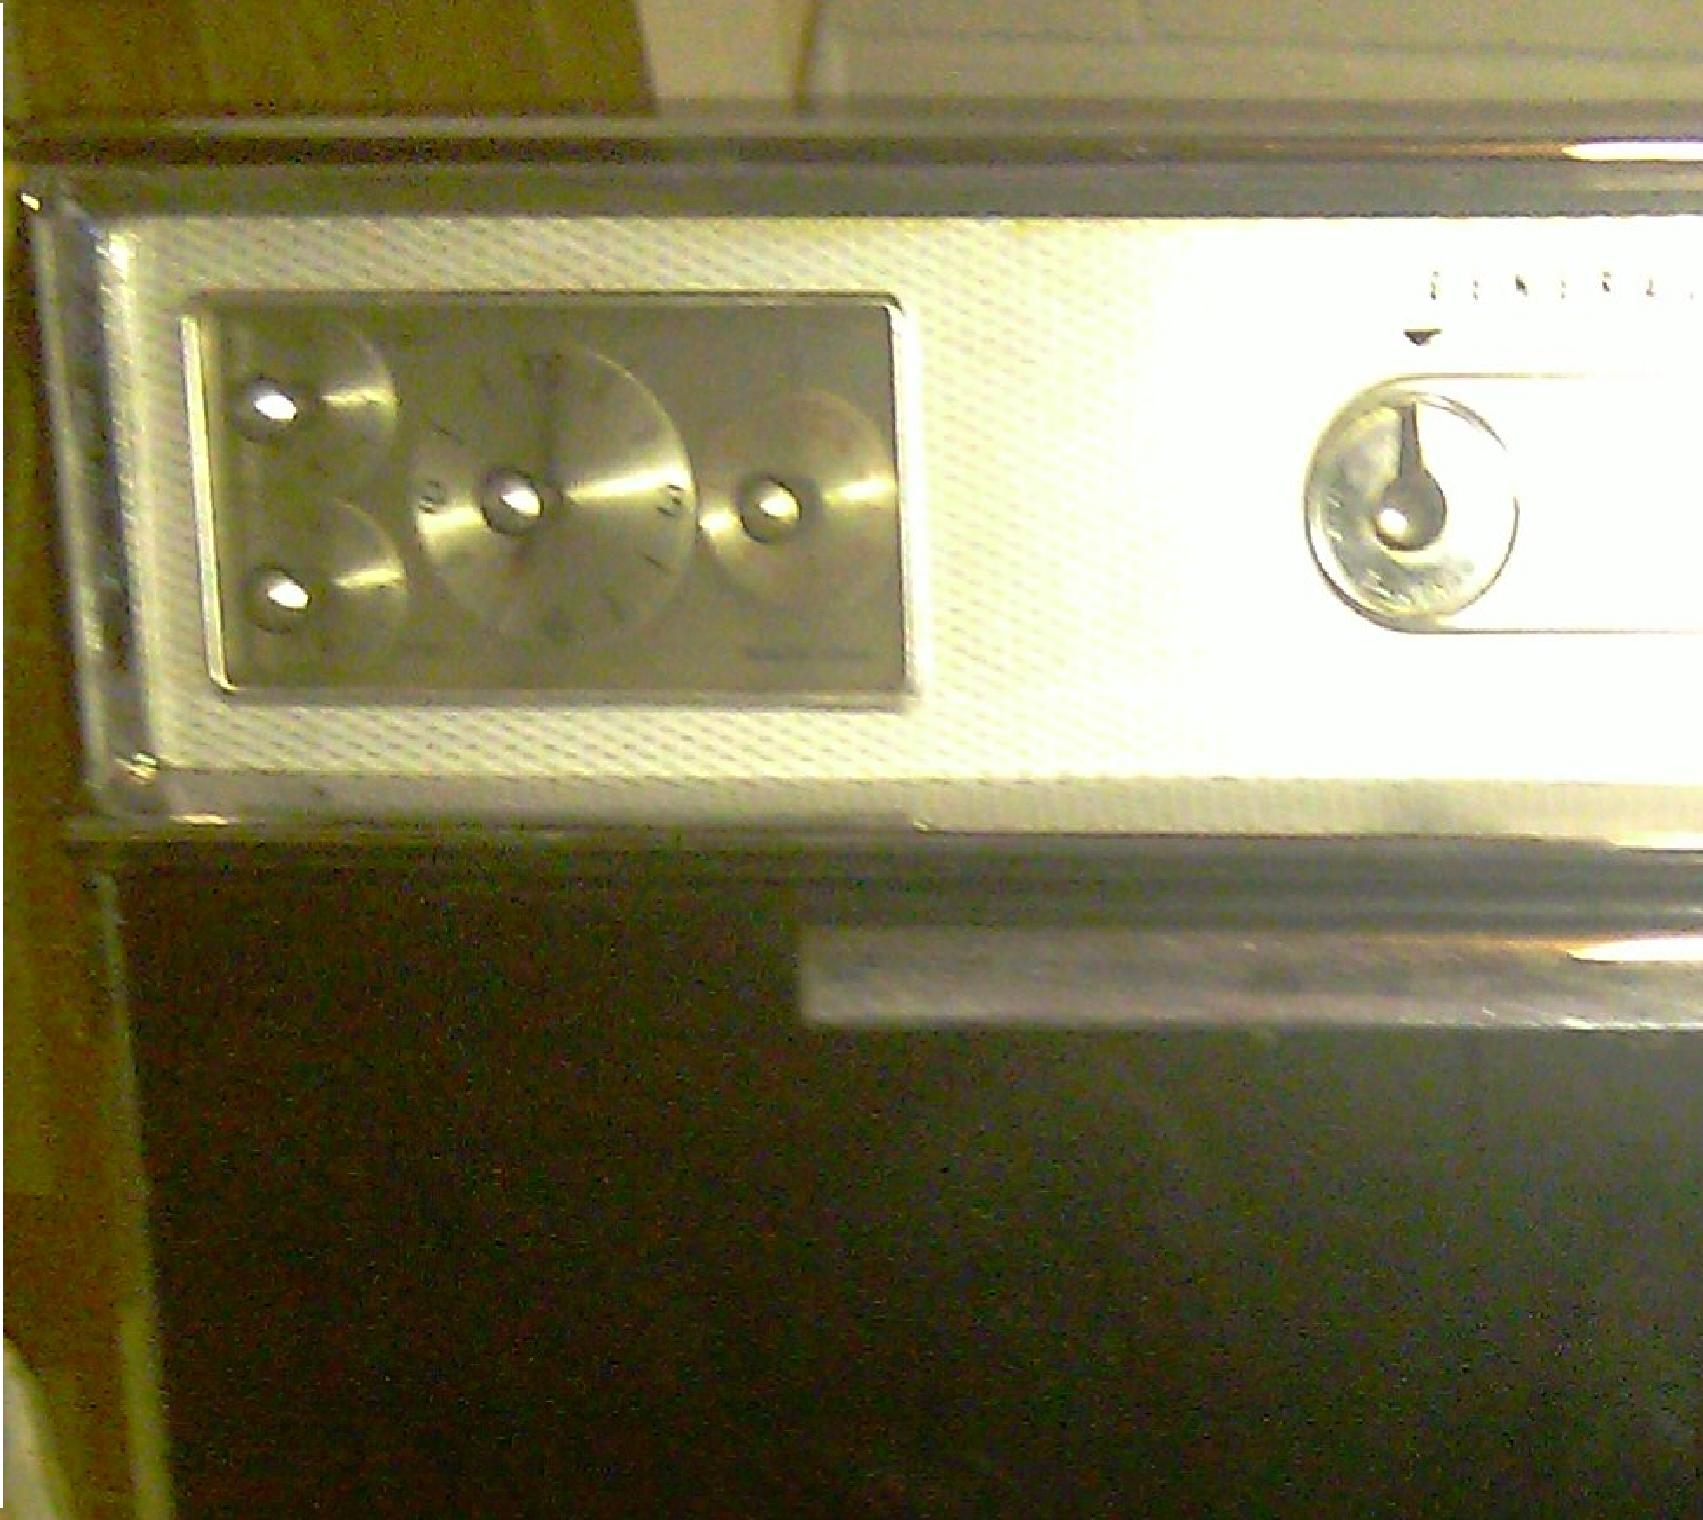 1960s Wall Oven Wall Oven Needed to Buy